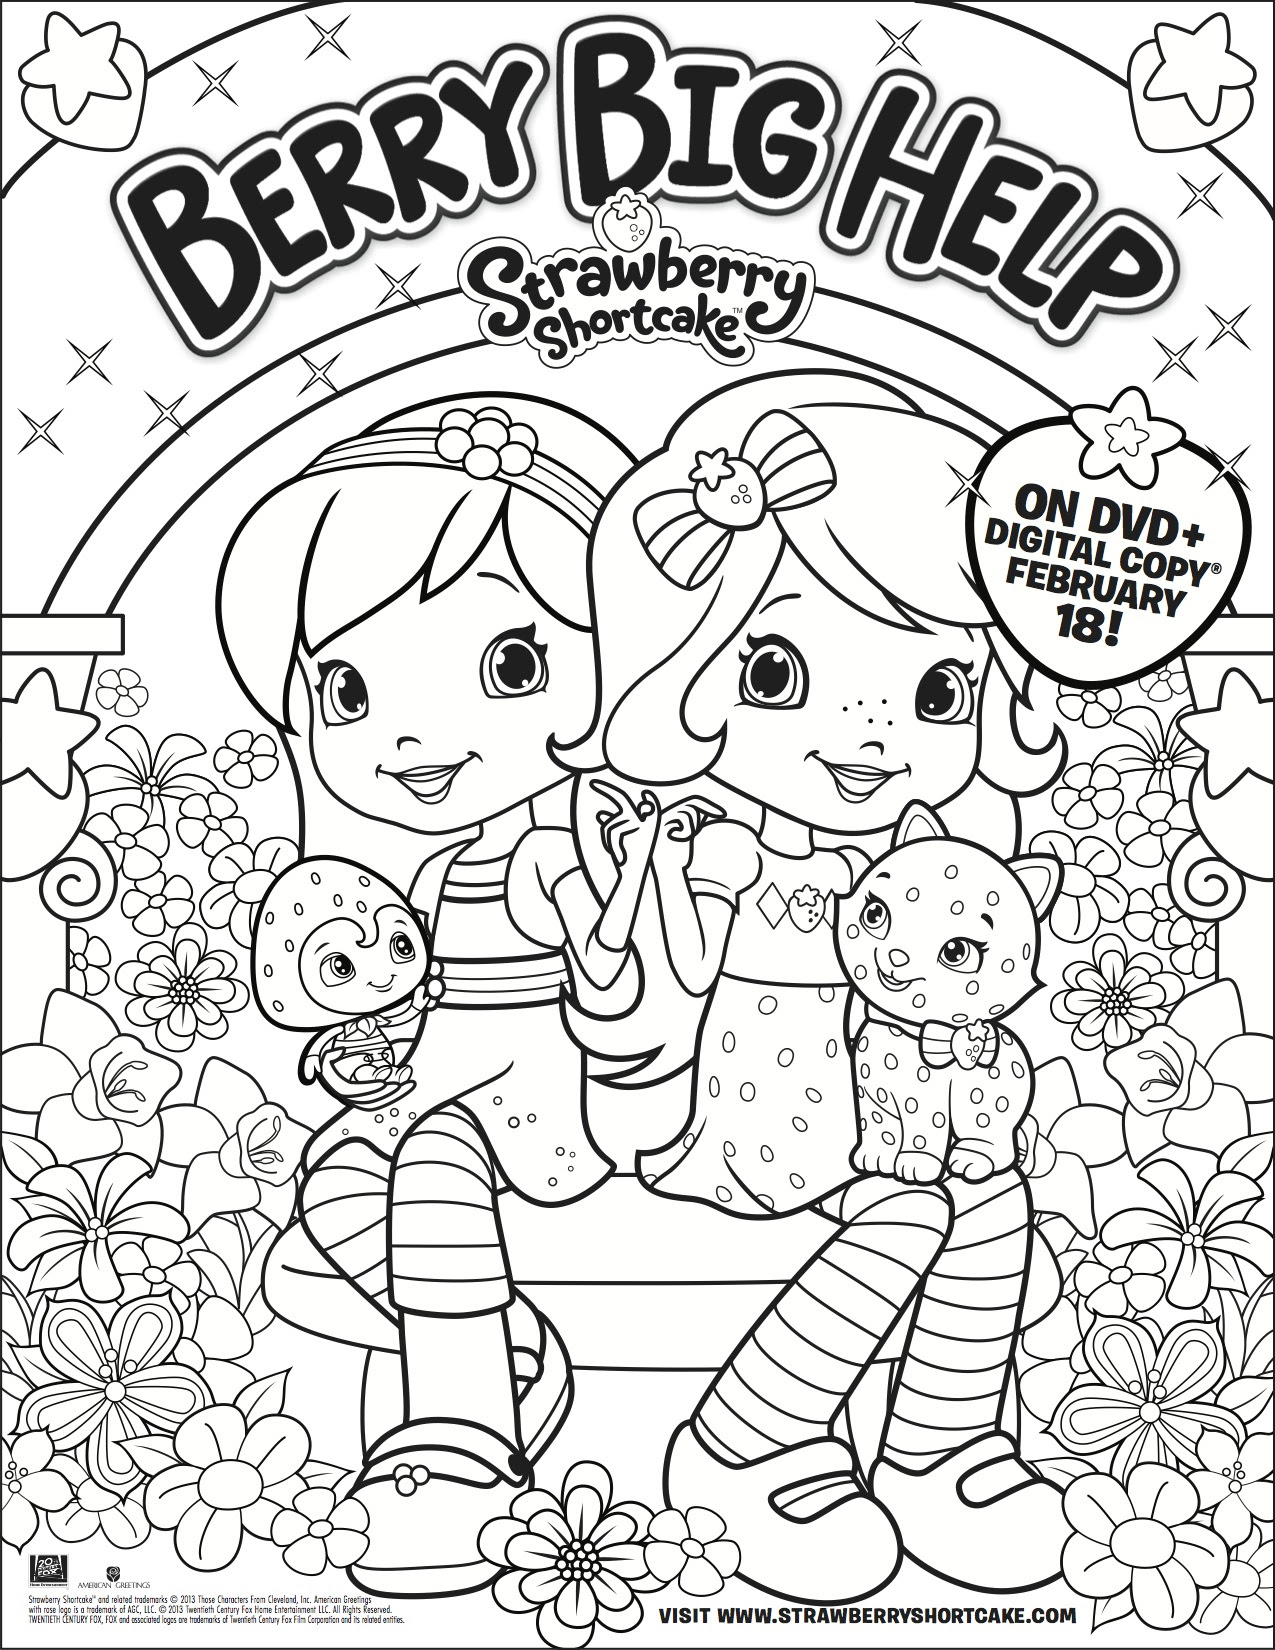 Strawberry Shortcake Coloring Page Long Wait For Isabella